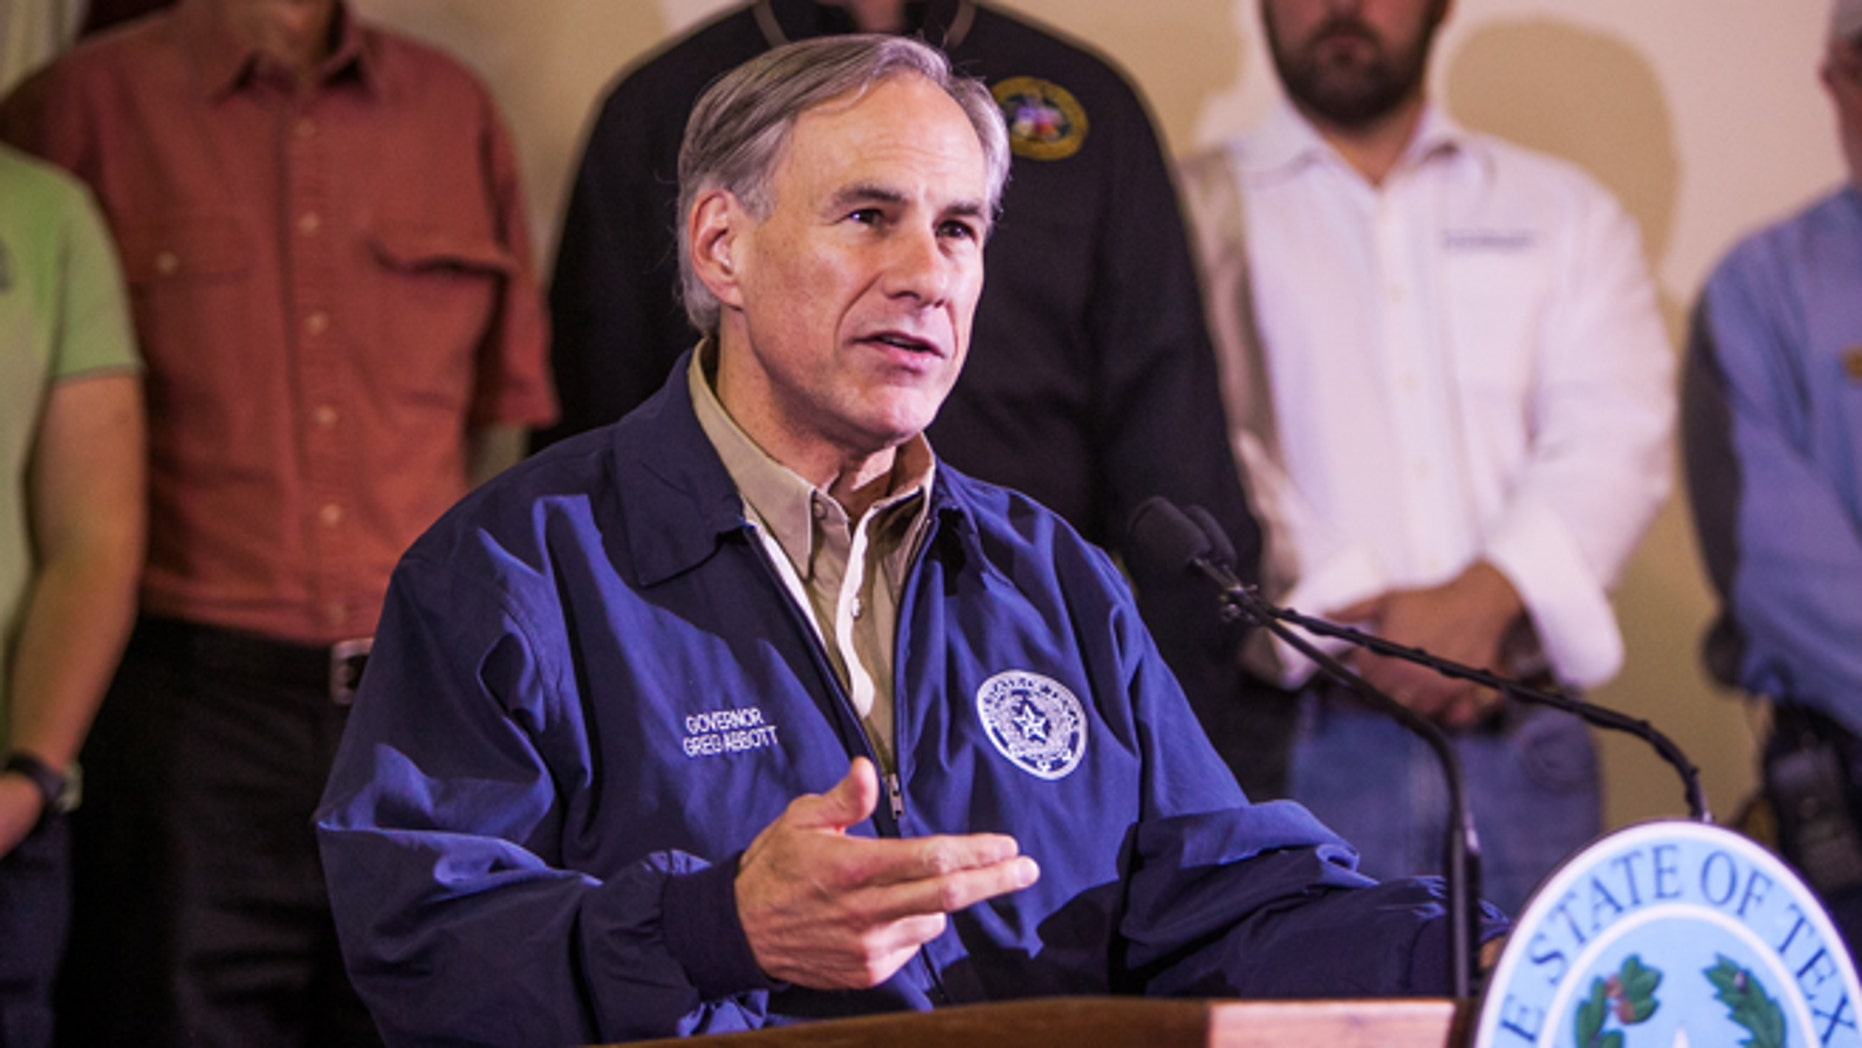 Texas Gov. Greg Abbott speaks at a news conference on May 25, 2015 in Wimberly, Texas. (Photo by Drew Anthony Smith/Getty Images)